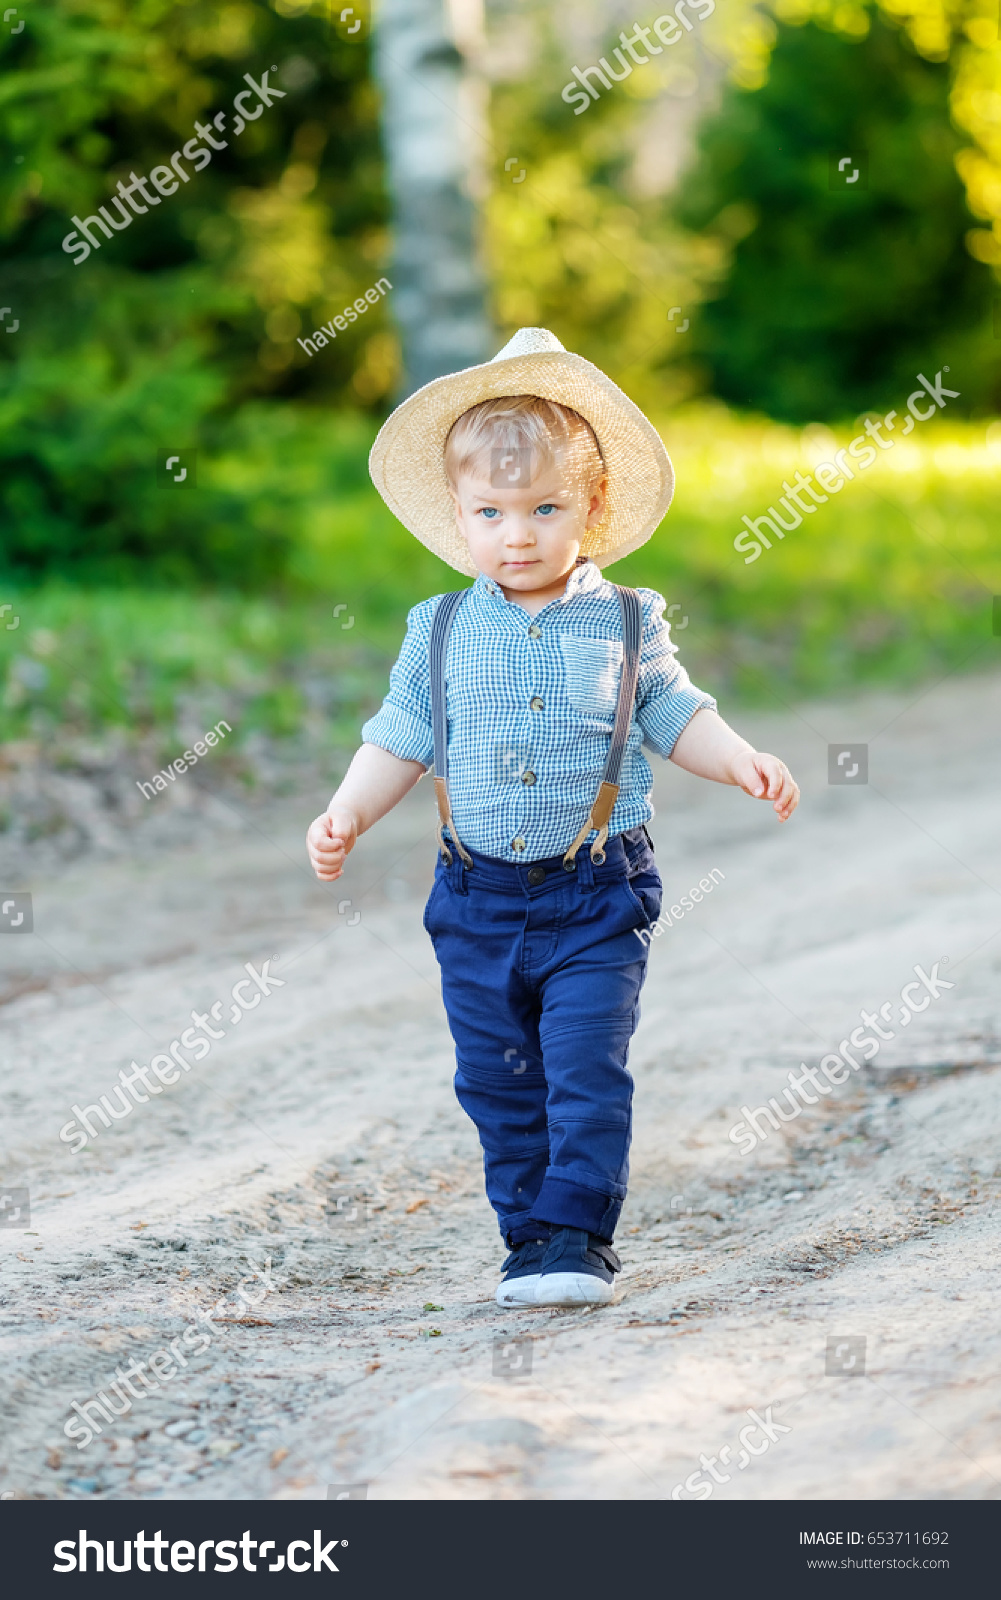 Portrait of toddler child outdoors. Rural scene with one year old baby boy  wearing straw hat 5f61c1037a2